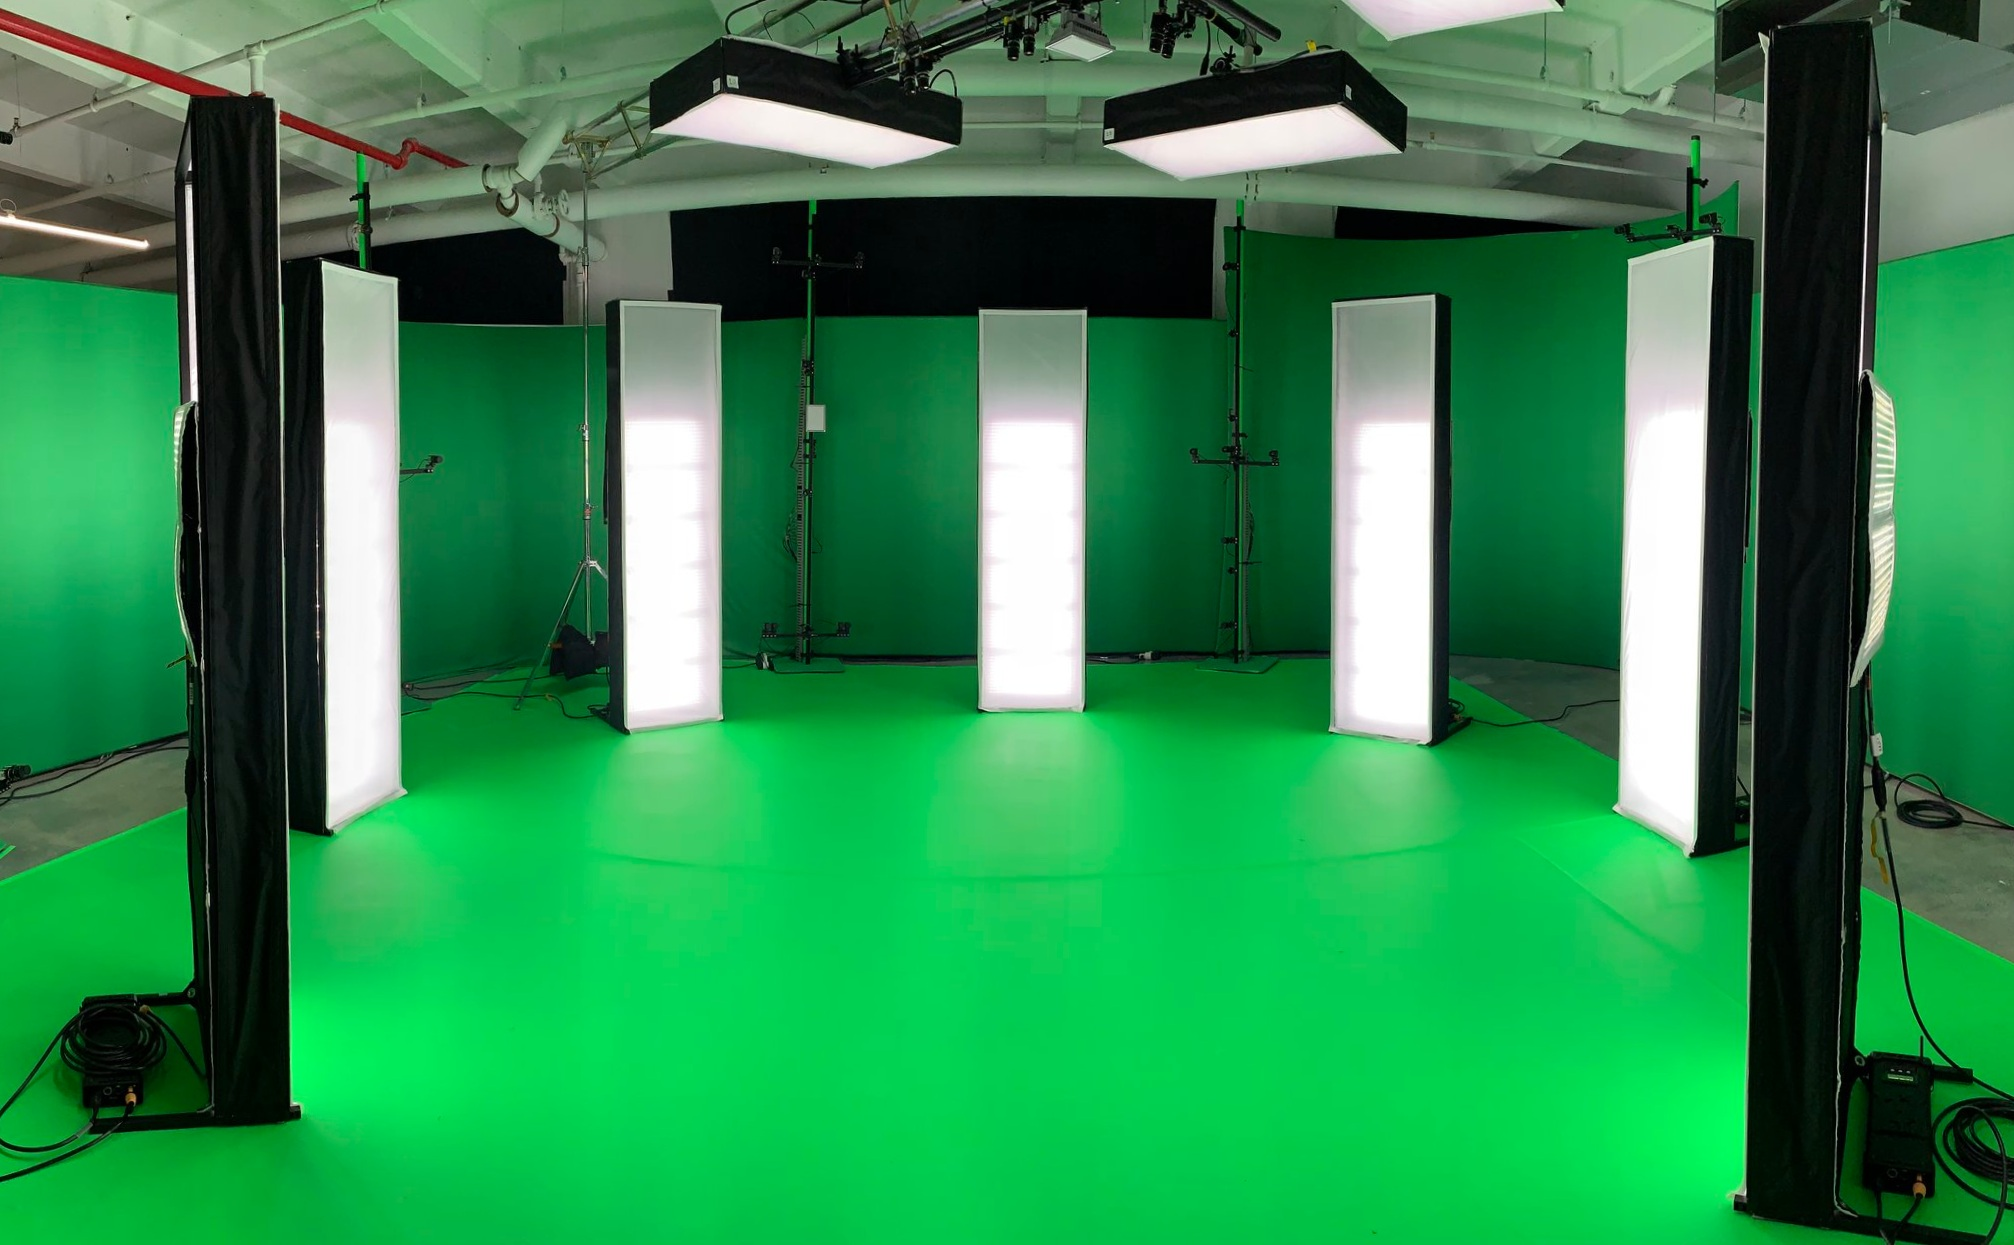 We are thrilled to be hosting Microsoft's volumetric capture pop-up in NYC through September.